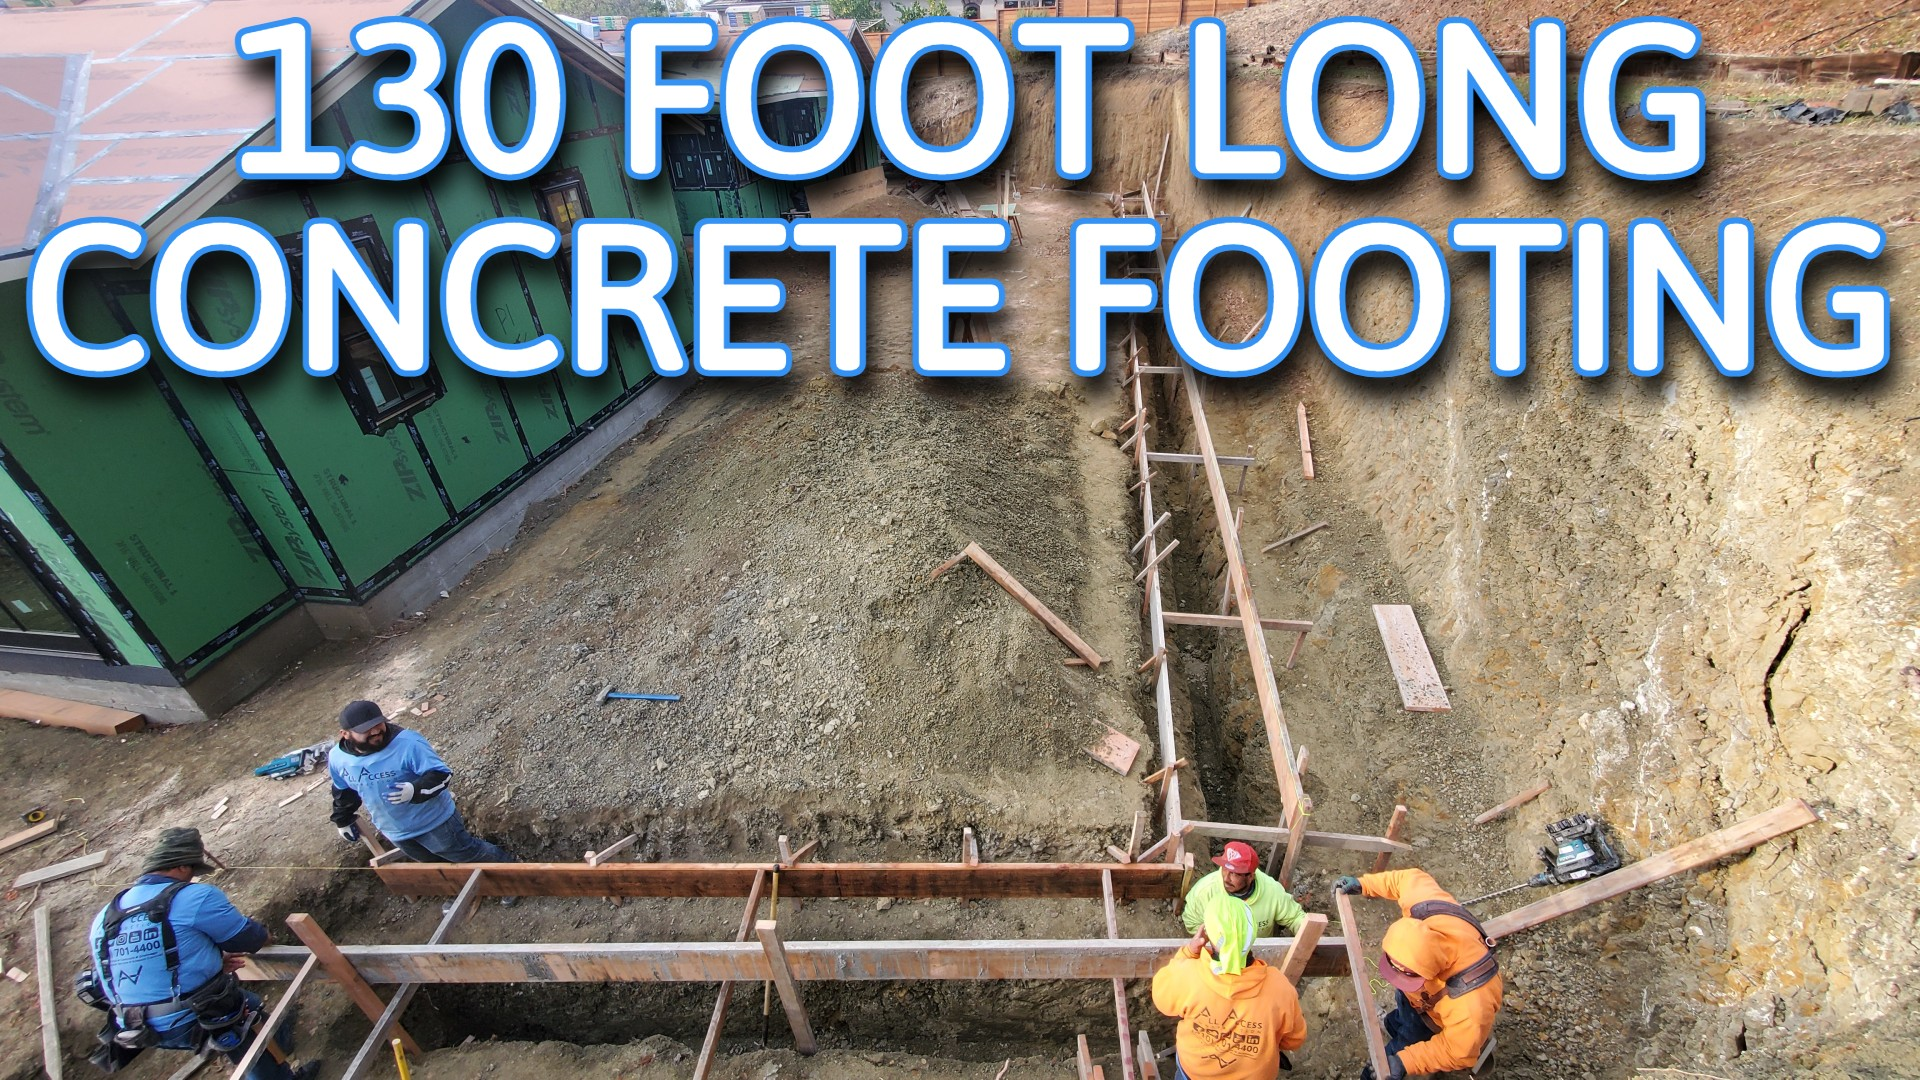 OW TO INSTALL CONCRETE FOOTING